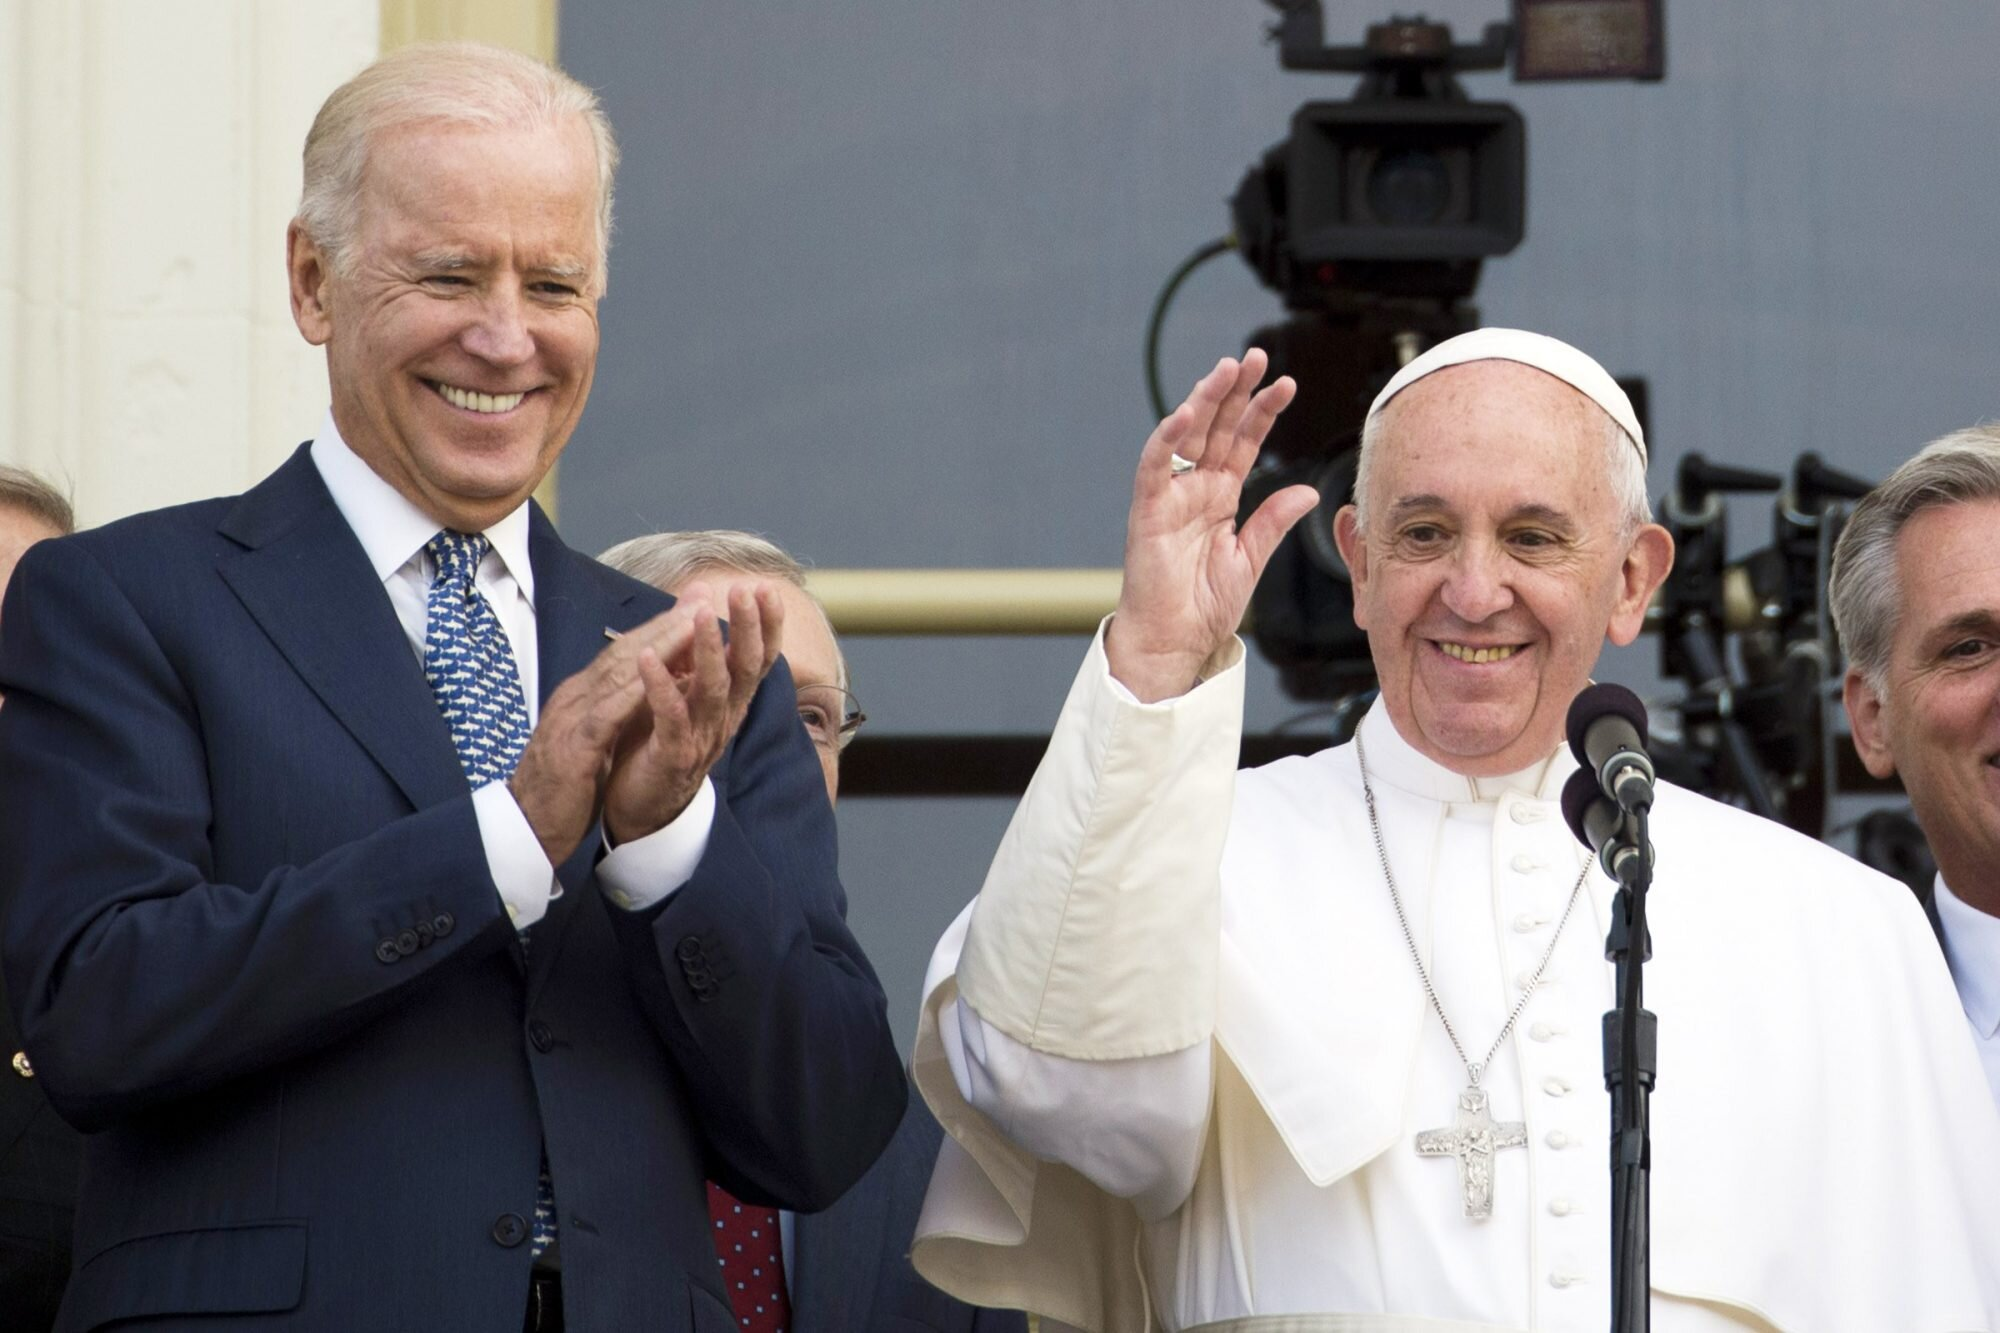 Pope Francis and President Biden